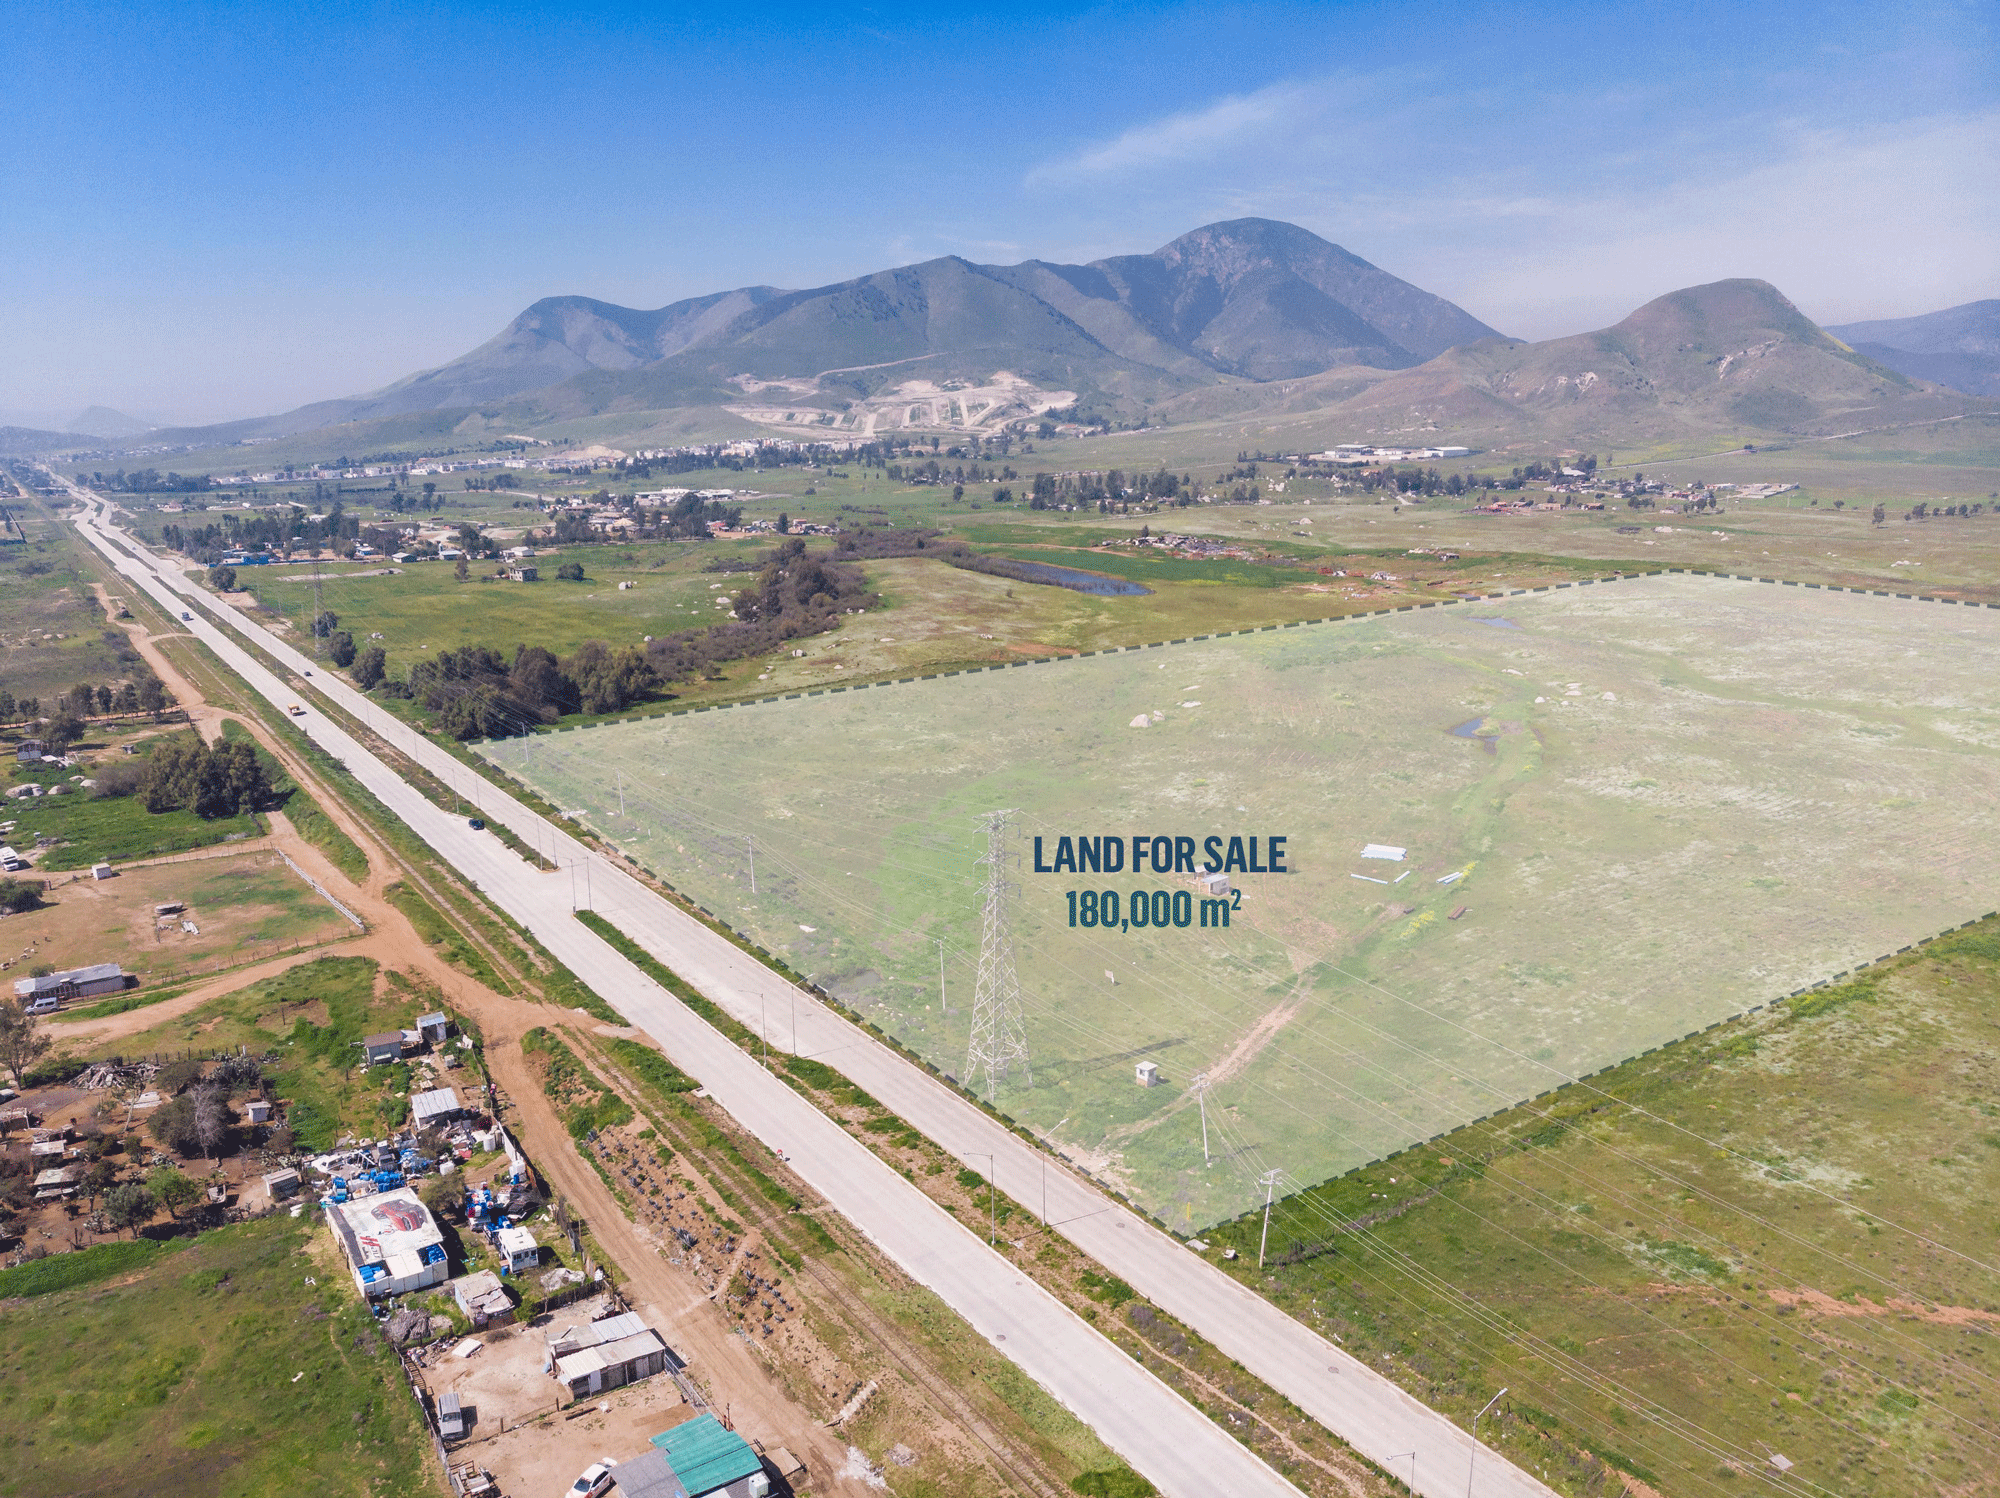 Detailed area of land for sale in Mexico